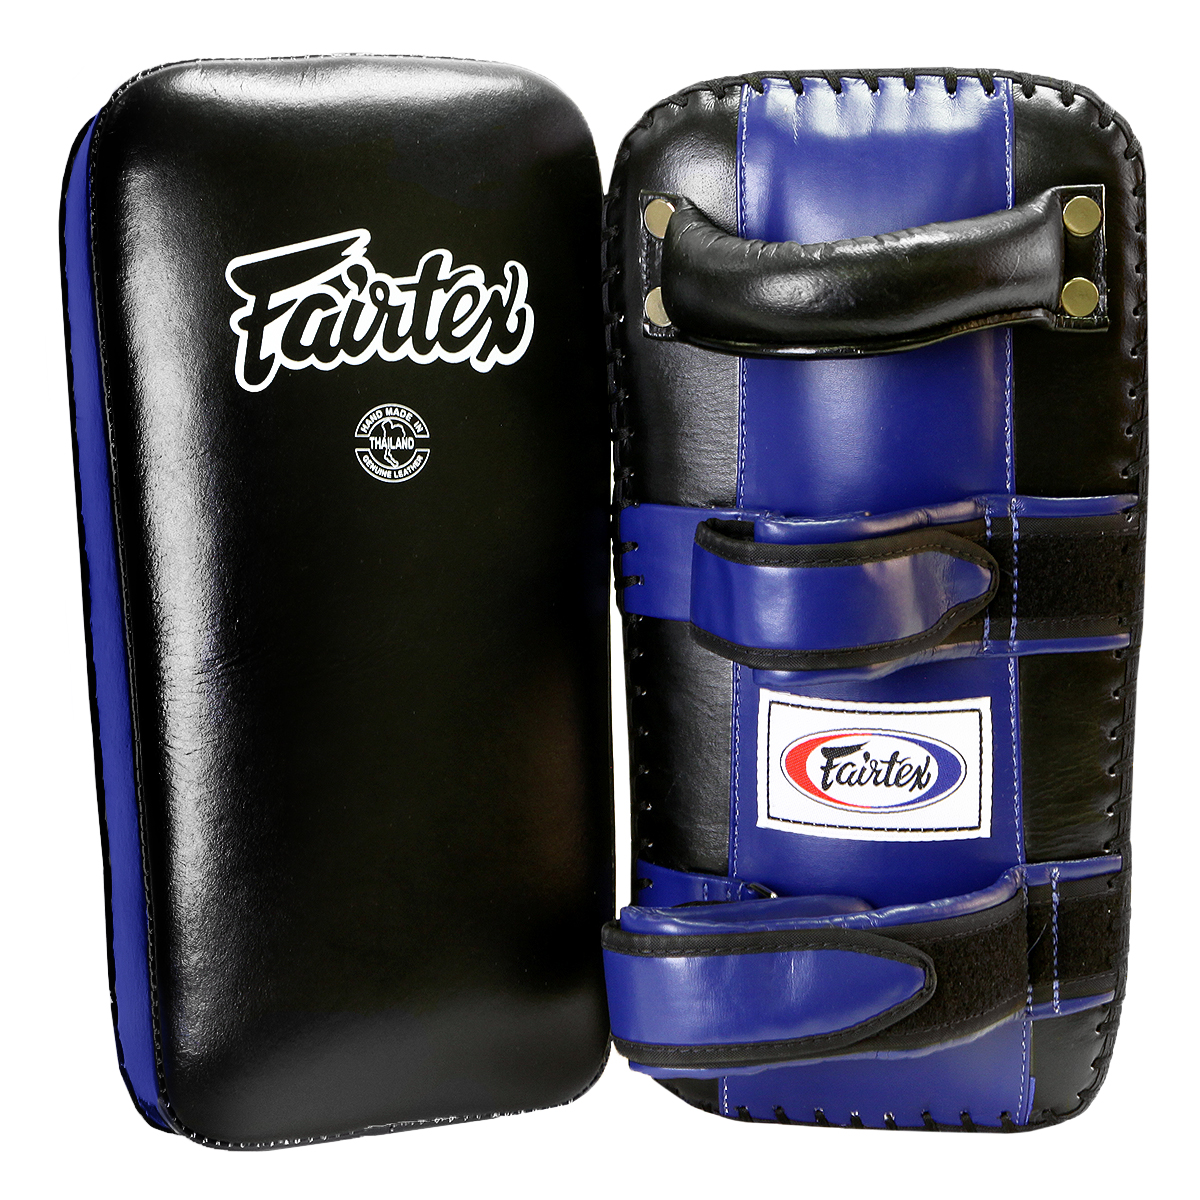 Fairtex Extra Long Thai Kick Pads - Black/Blue